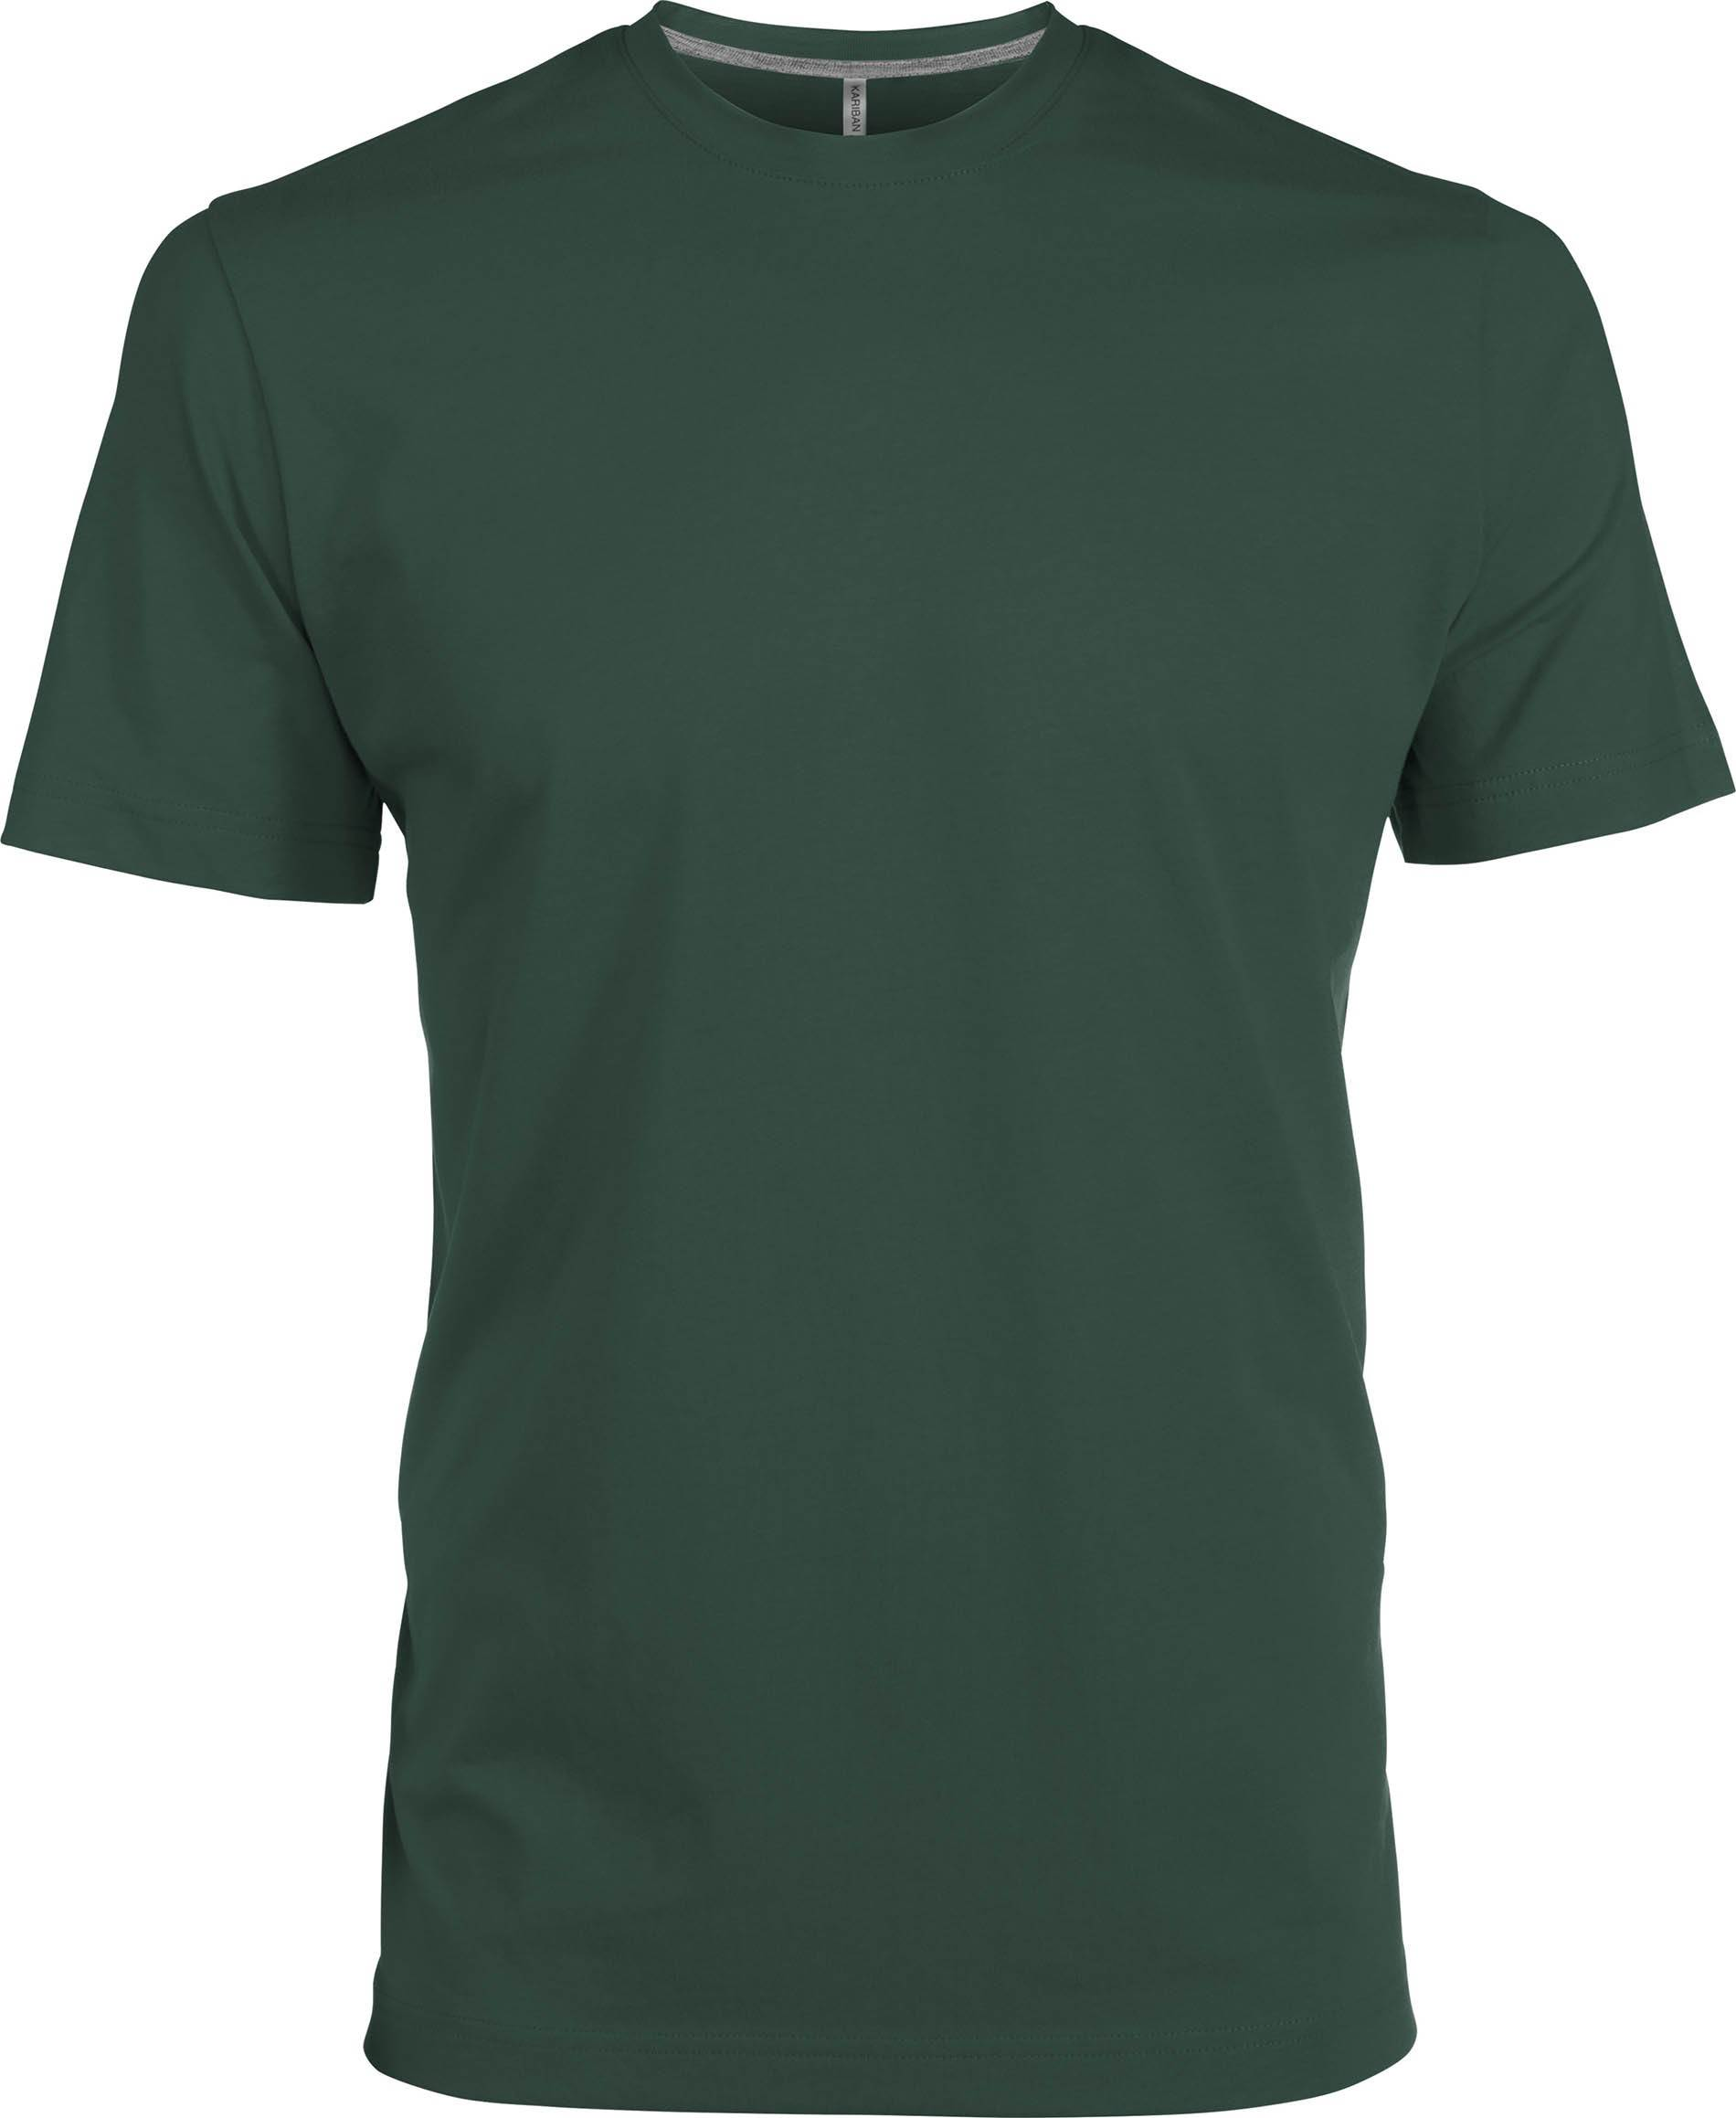 Kariban p l forest green s p l t shirt for Forest green polo shirts